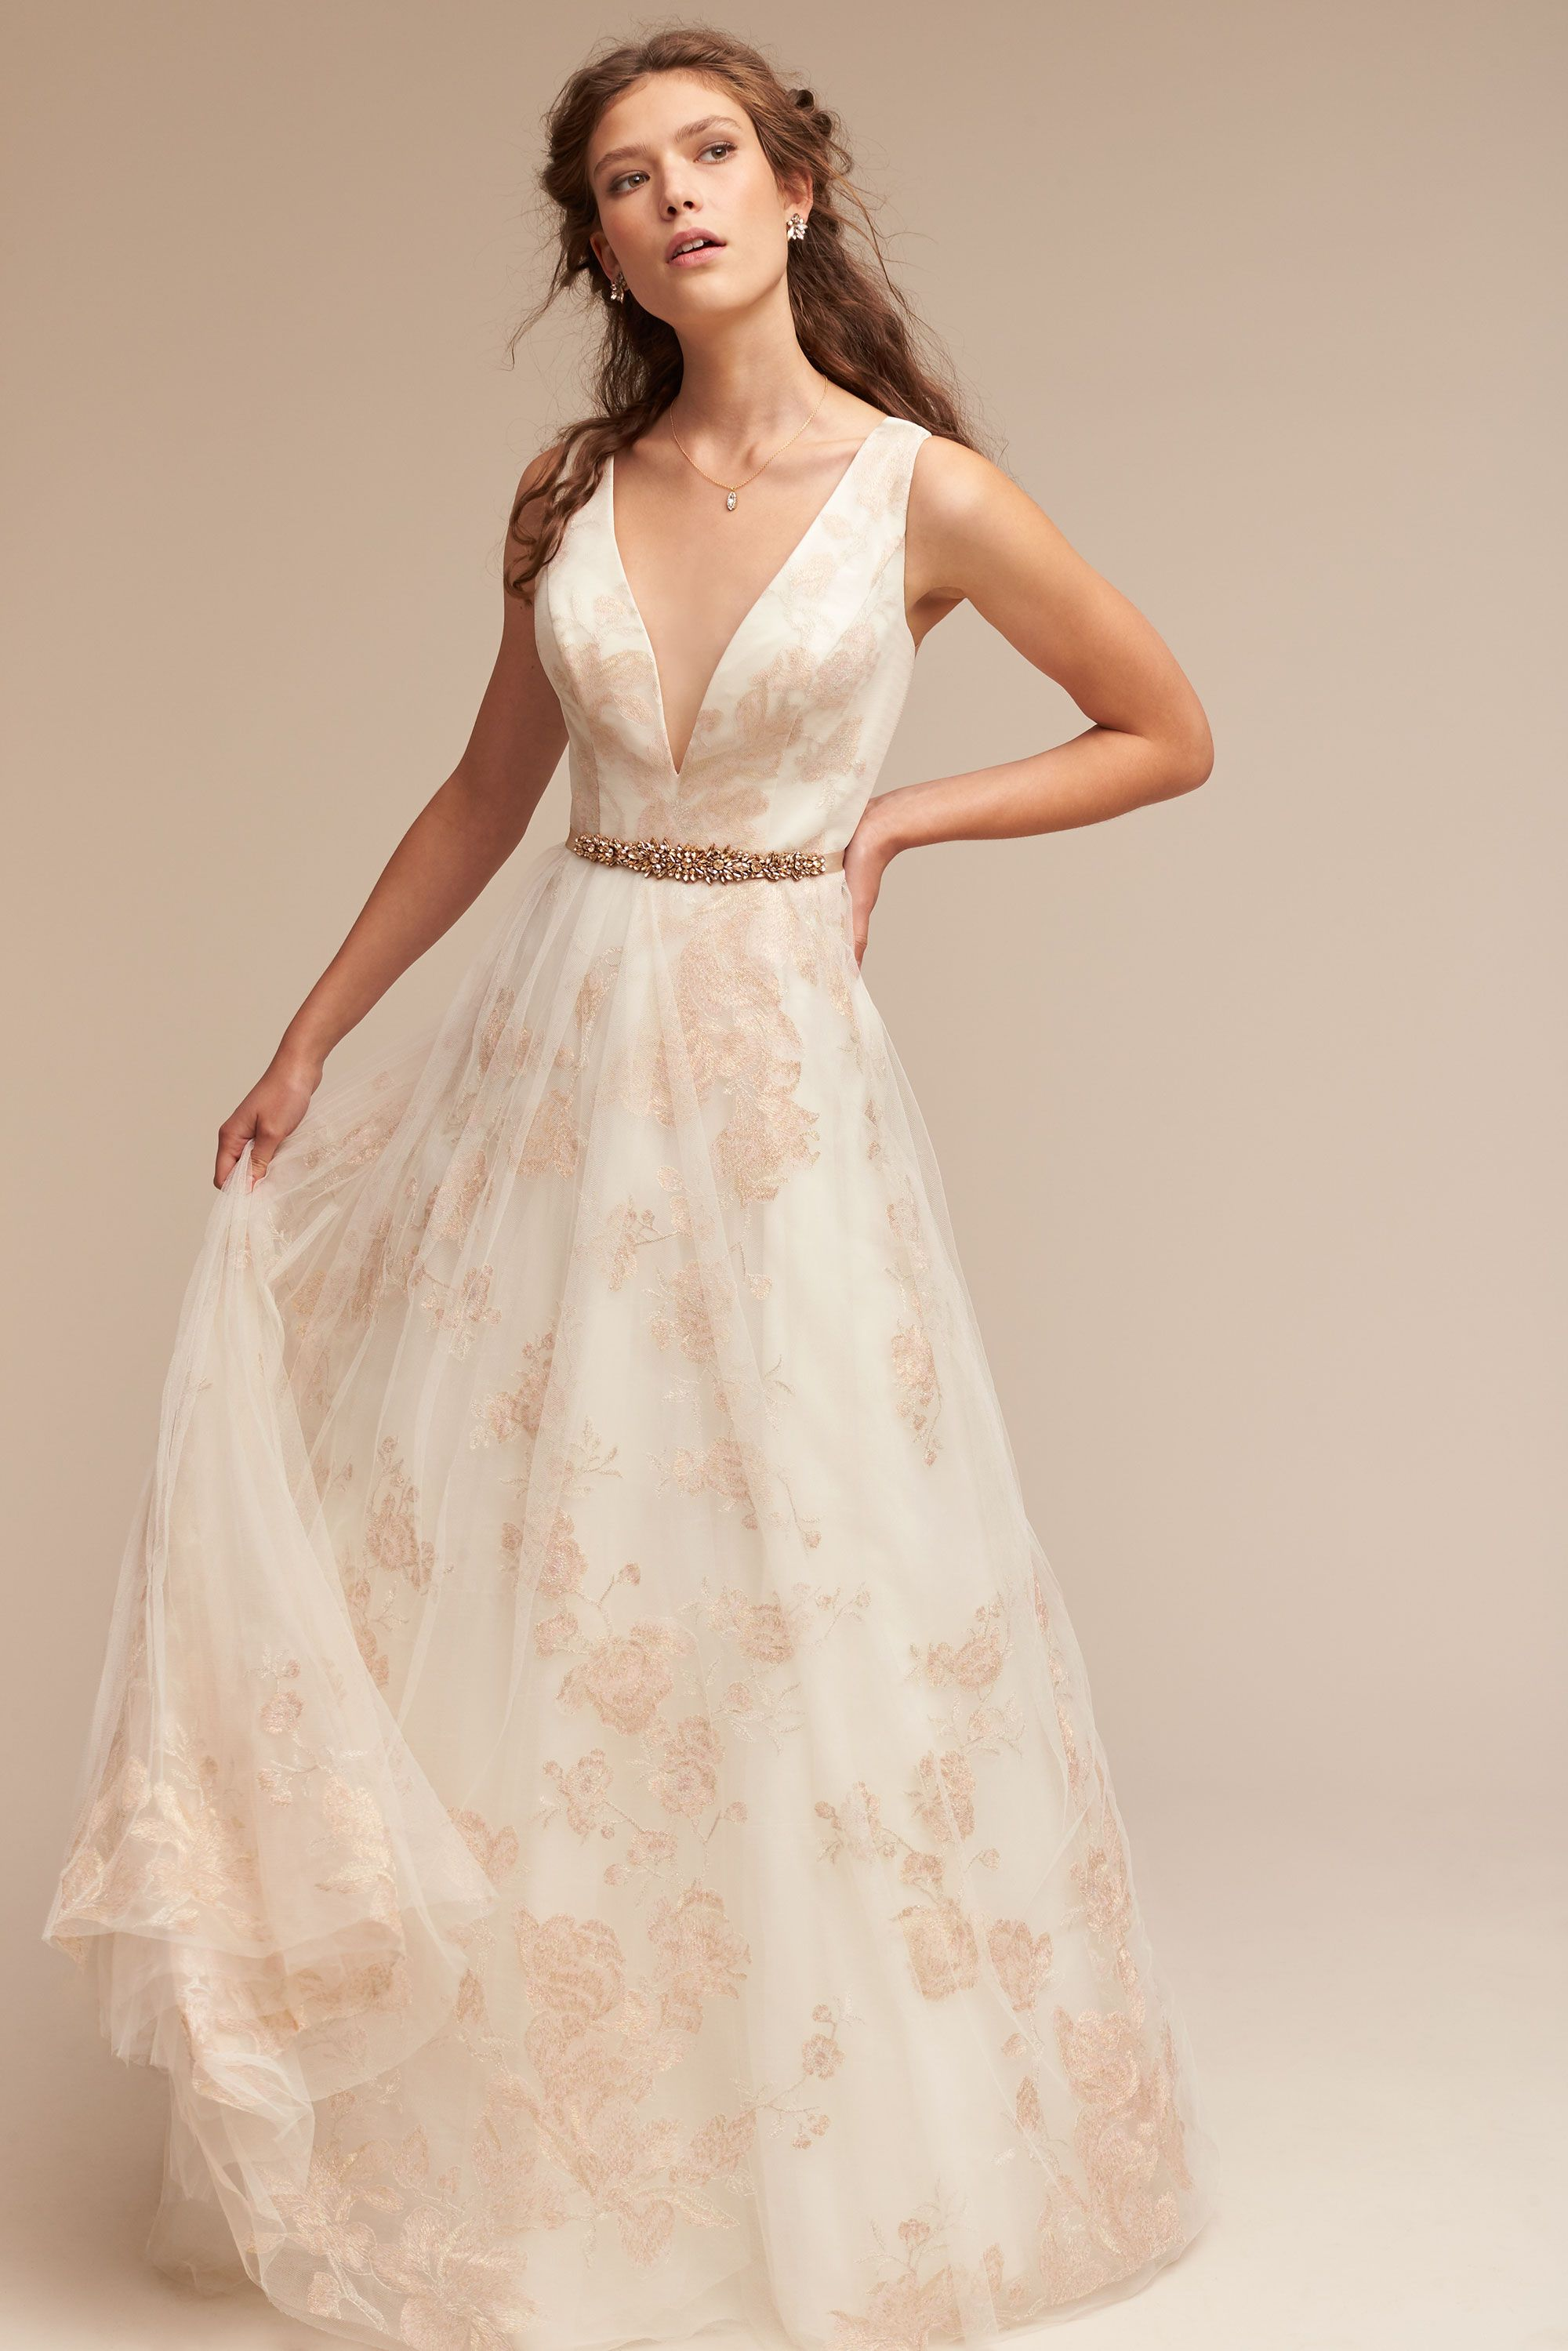 Romantic BHLDN Wedding Dresses - Lily Gown